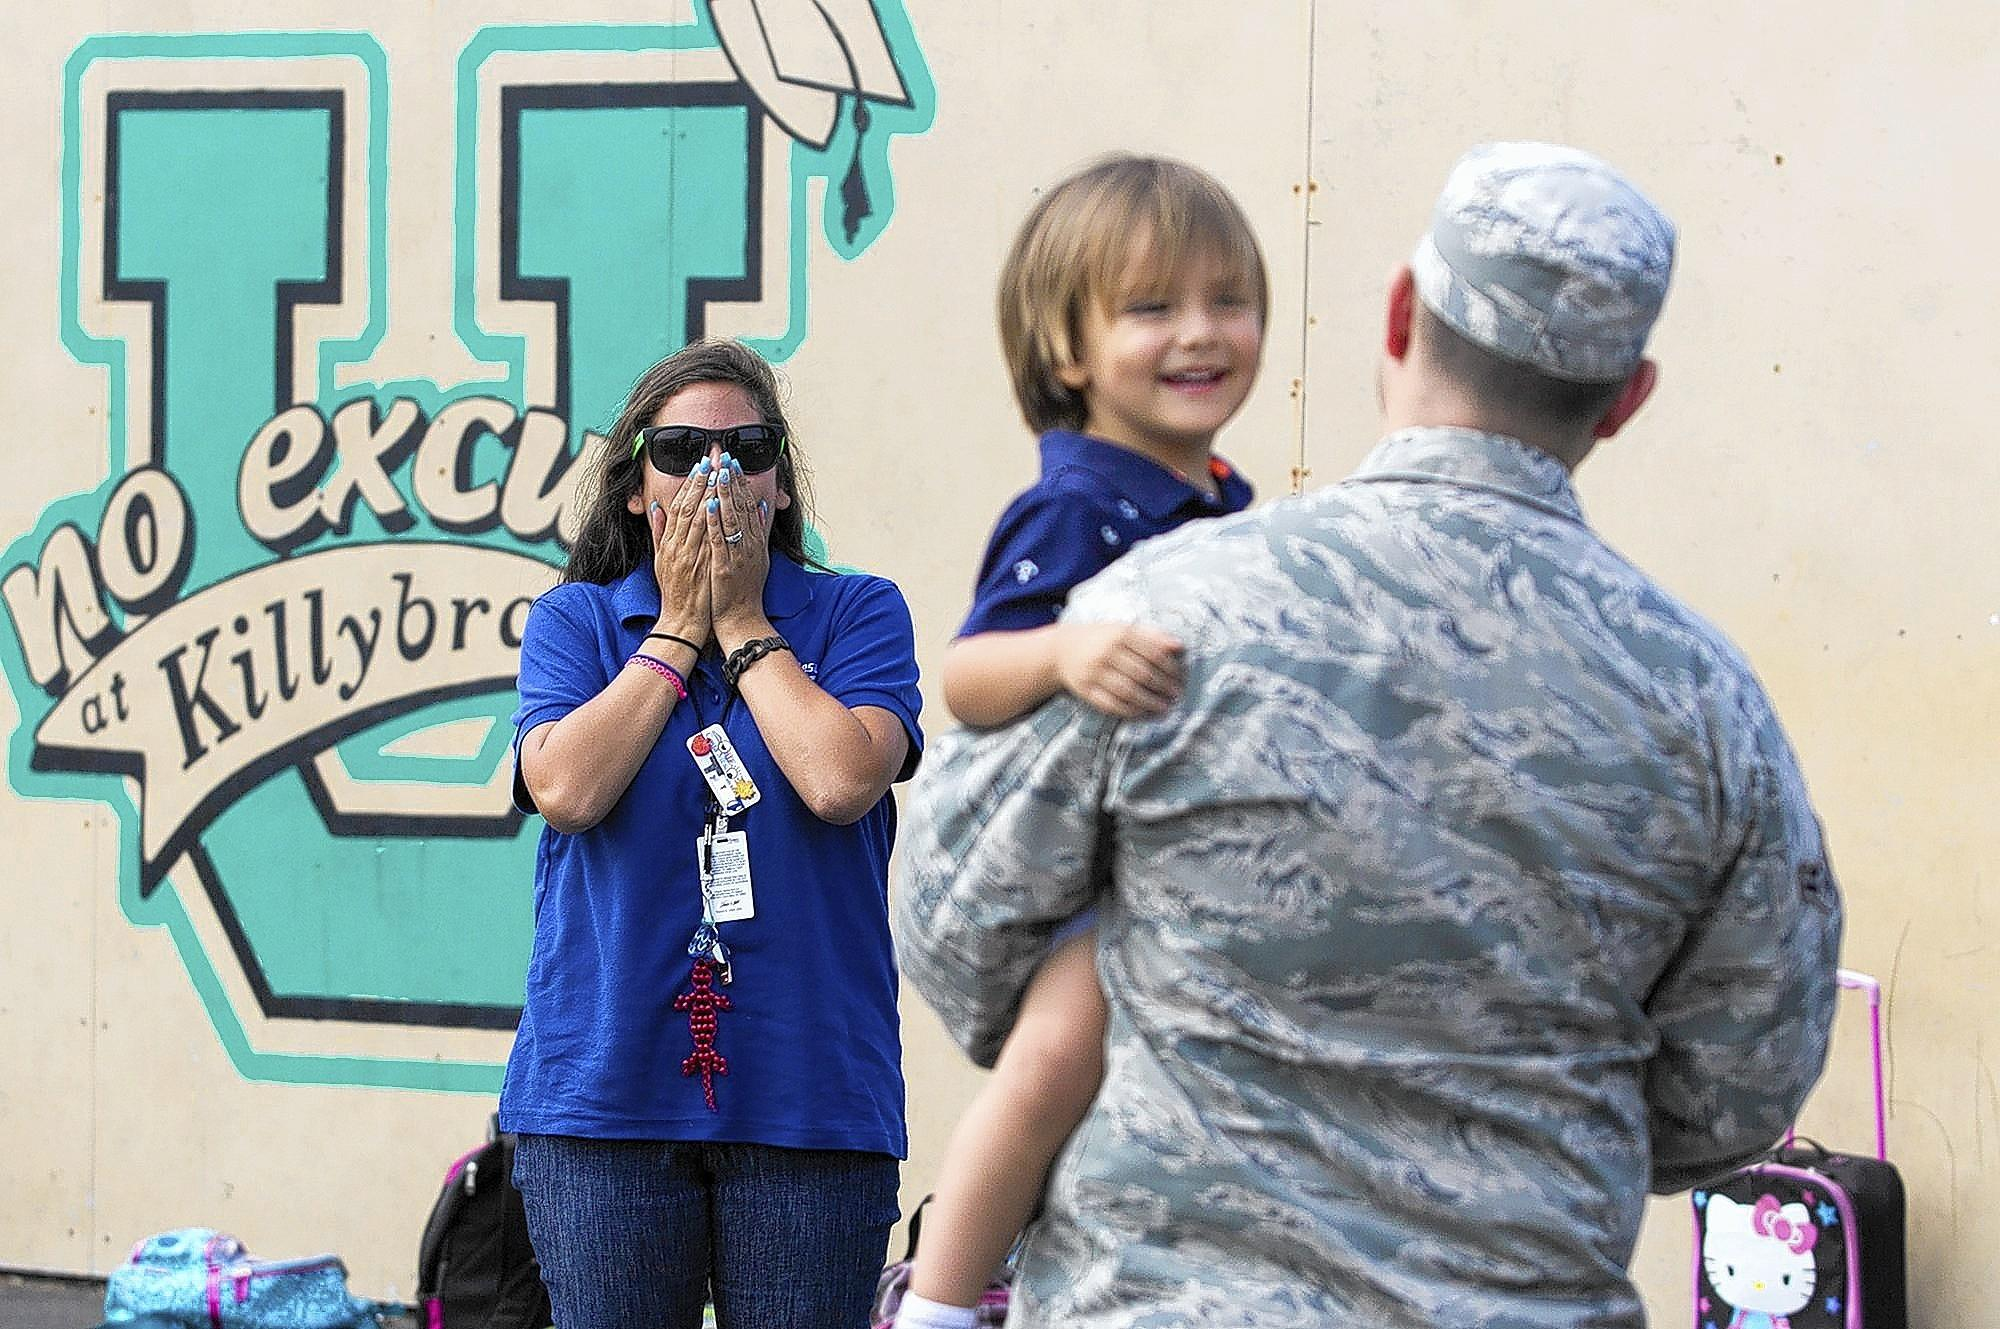 Theresa Byrne is surprised by her husband, Airman 1st Class Zachary Byrne, with the 30th Security Forces Squadron, and their son, Dominic, at Killybrooke Elementary School where she works as a site supervisor for the Recreation On Campus for Kids after school program on Thursday.